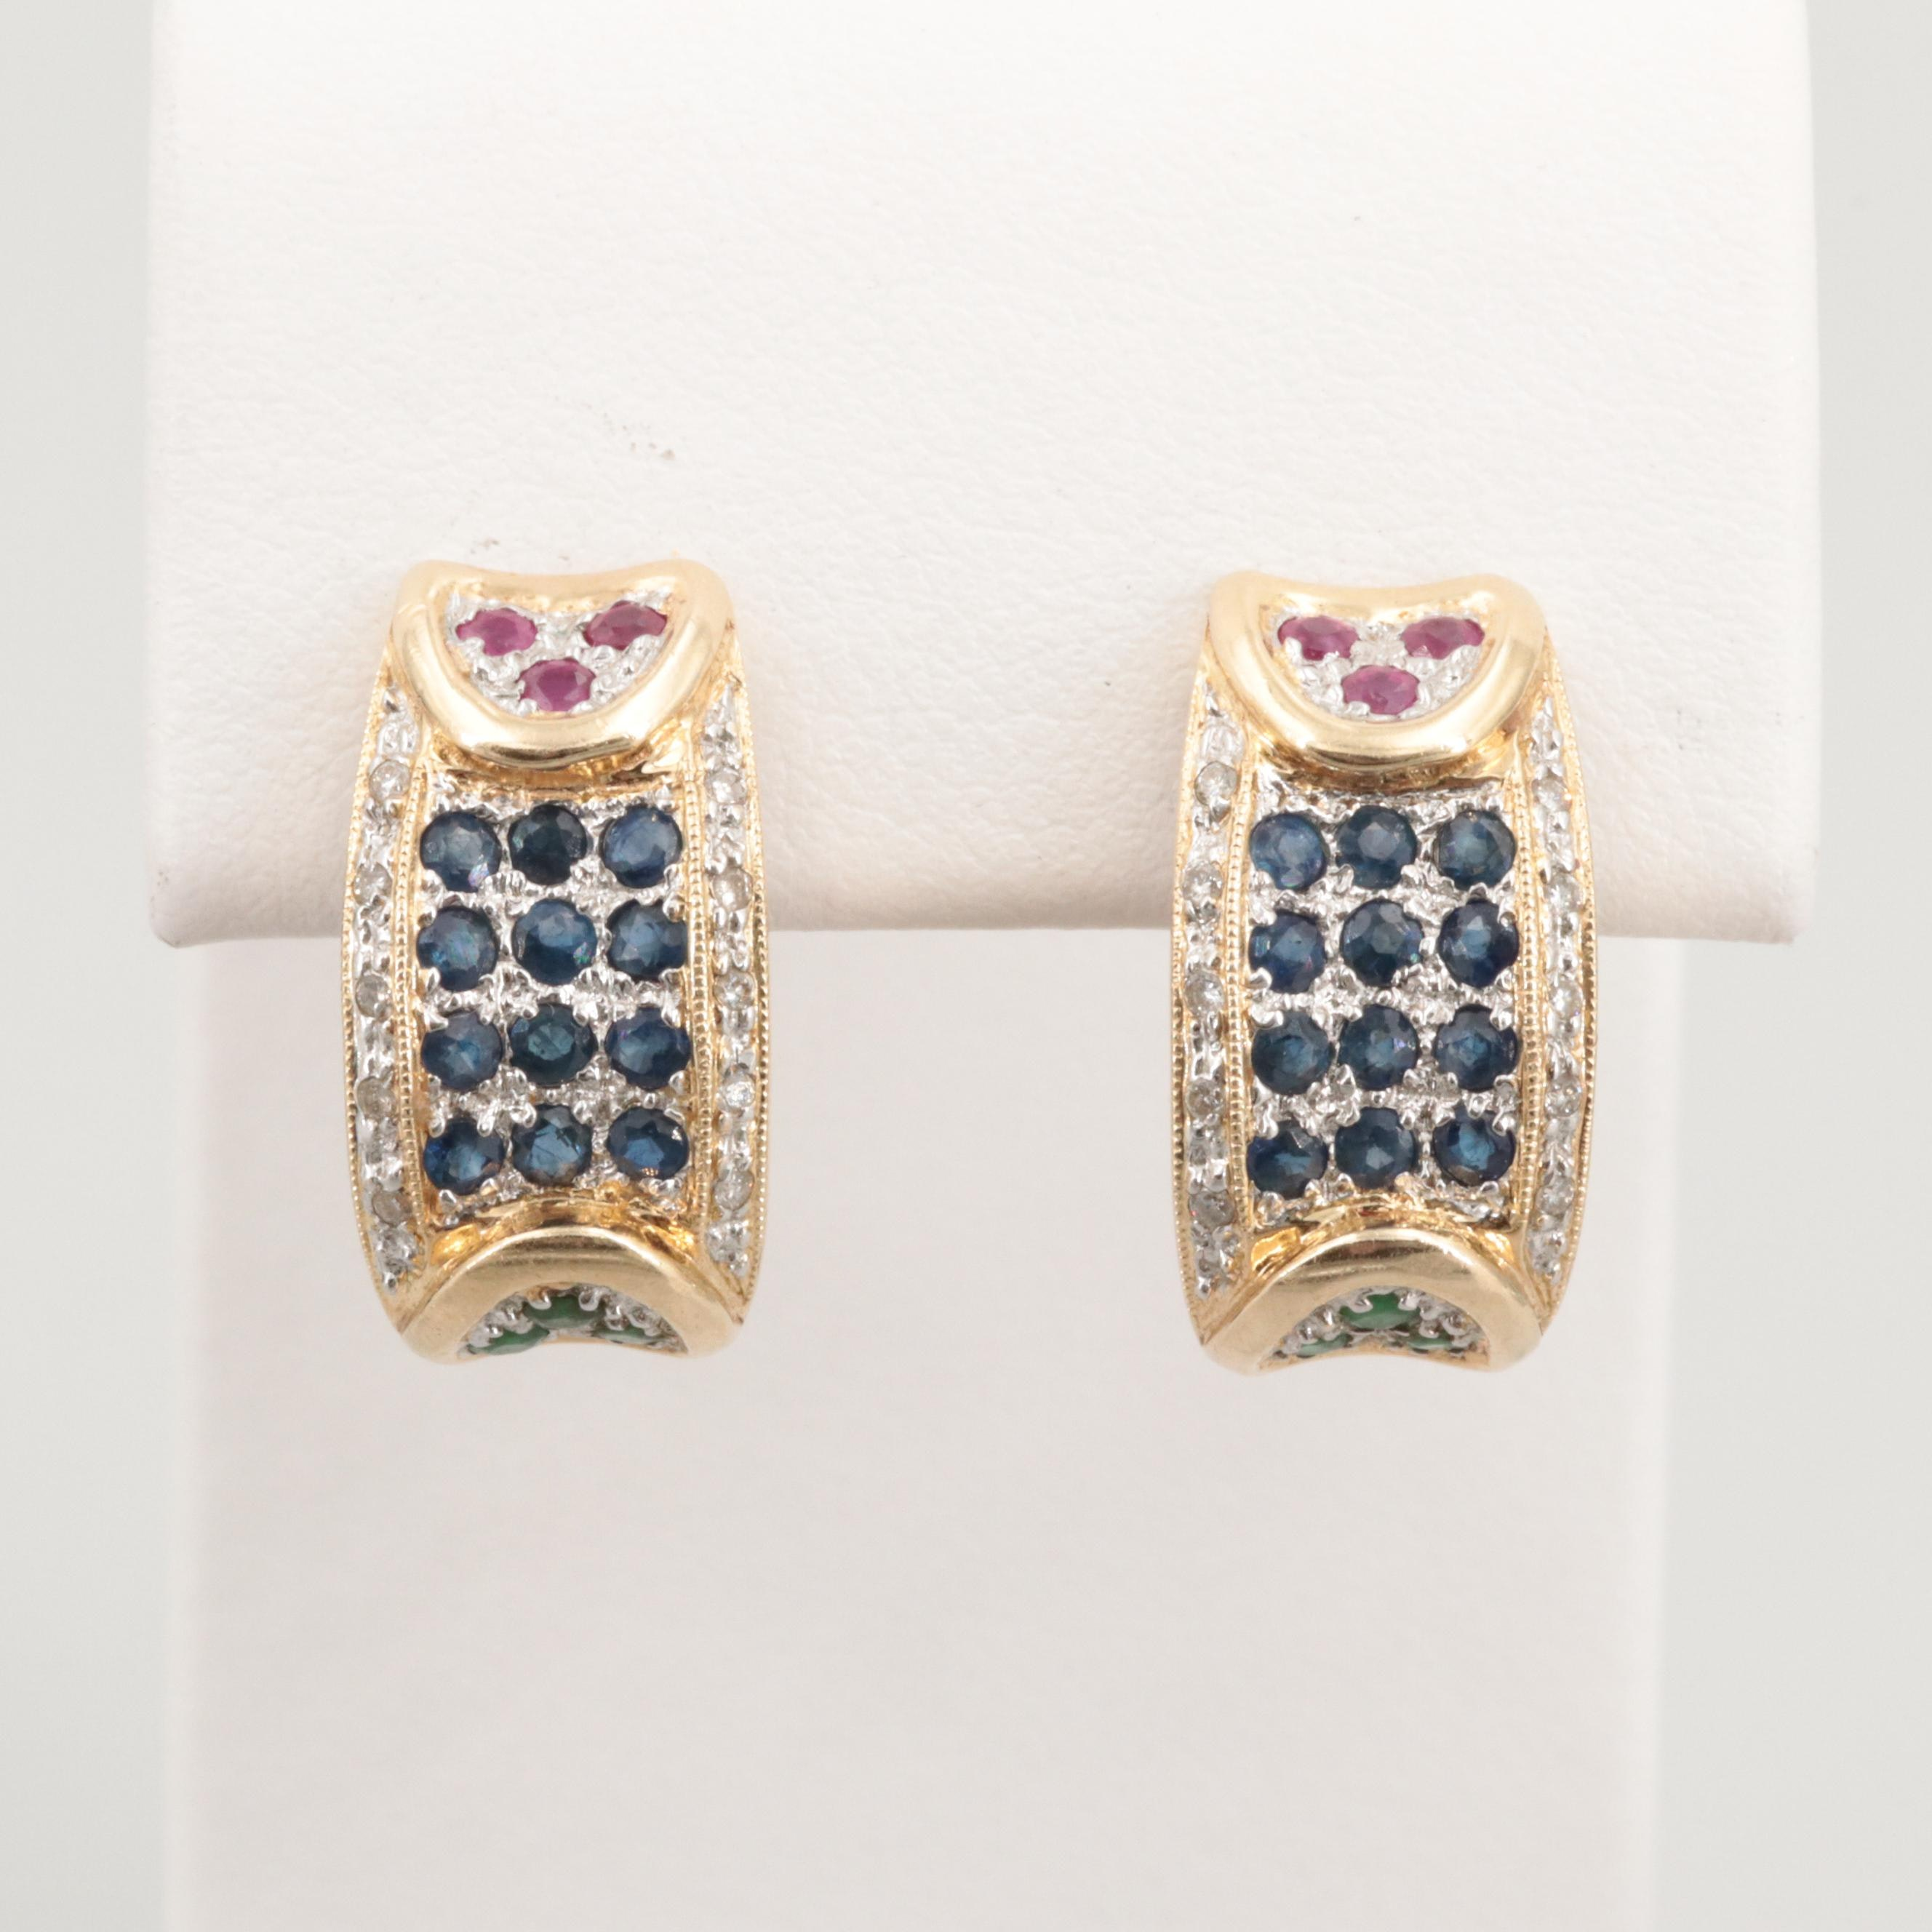 14K Yellow Gold Blue Sapphire, Ruby, Emerald and Diamond Earrings